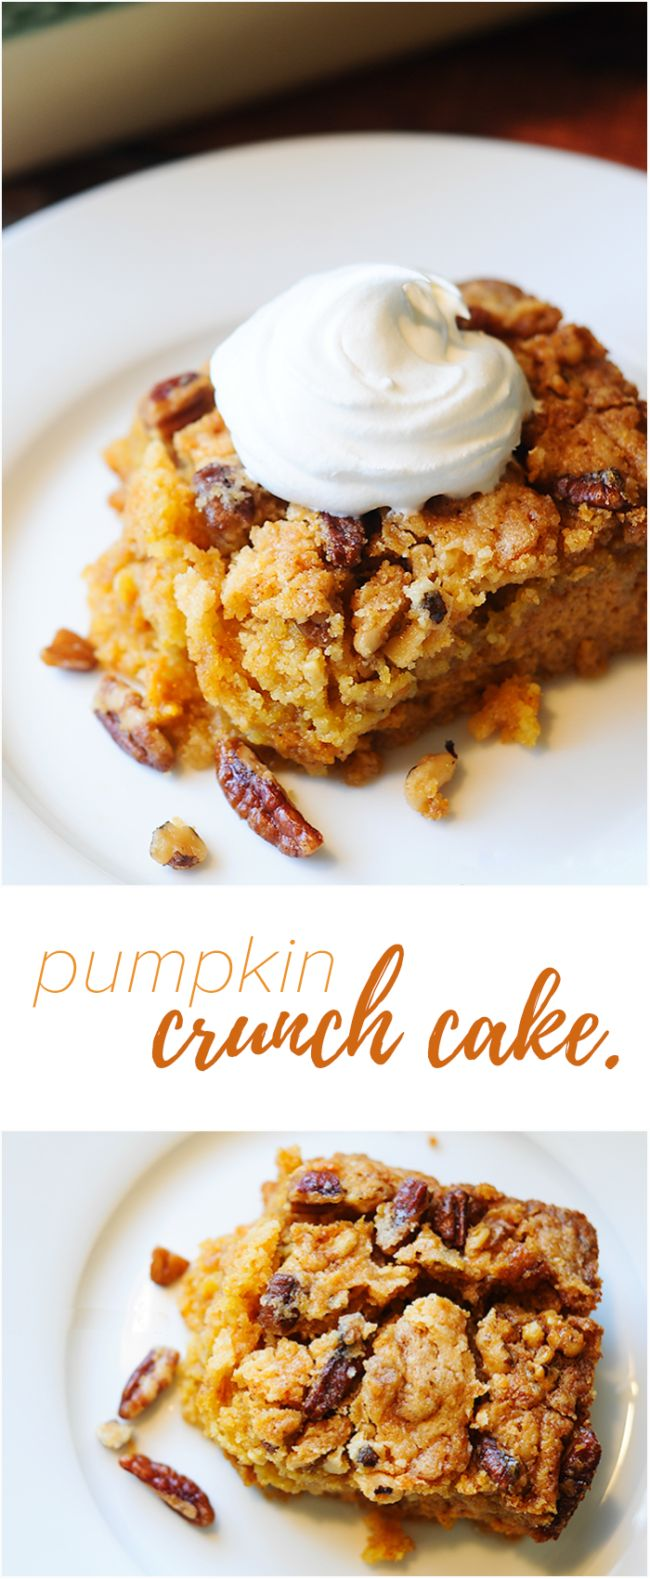 Best 25 Pumpkin Crunch Cake Ideas On Pinterest Pumpkin